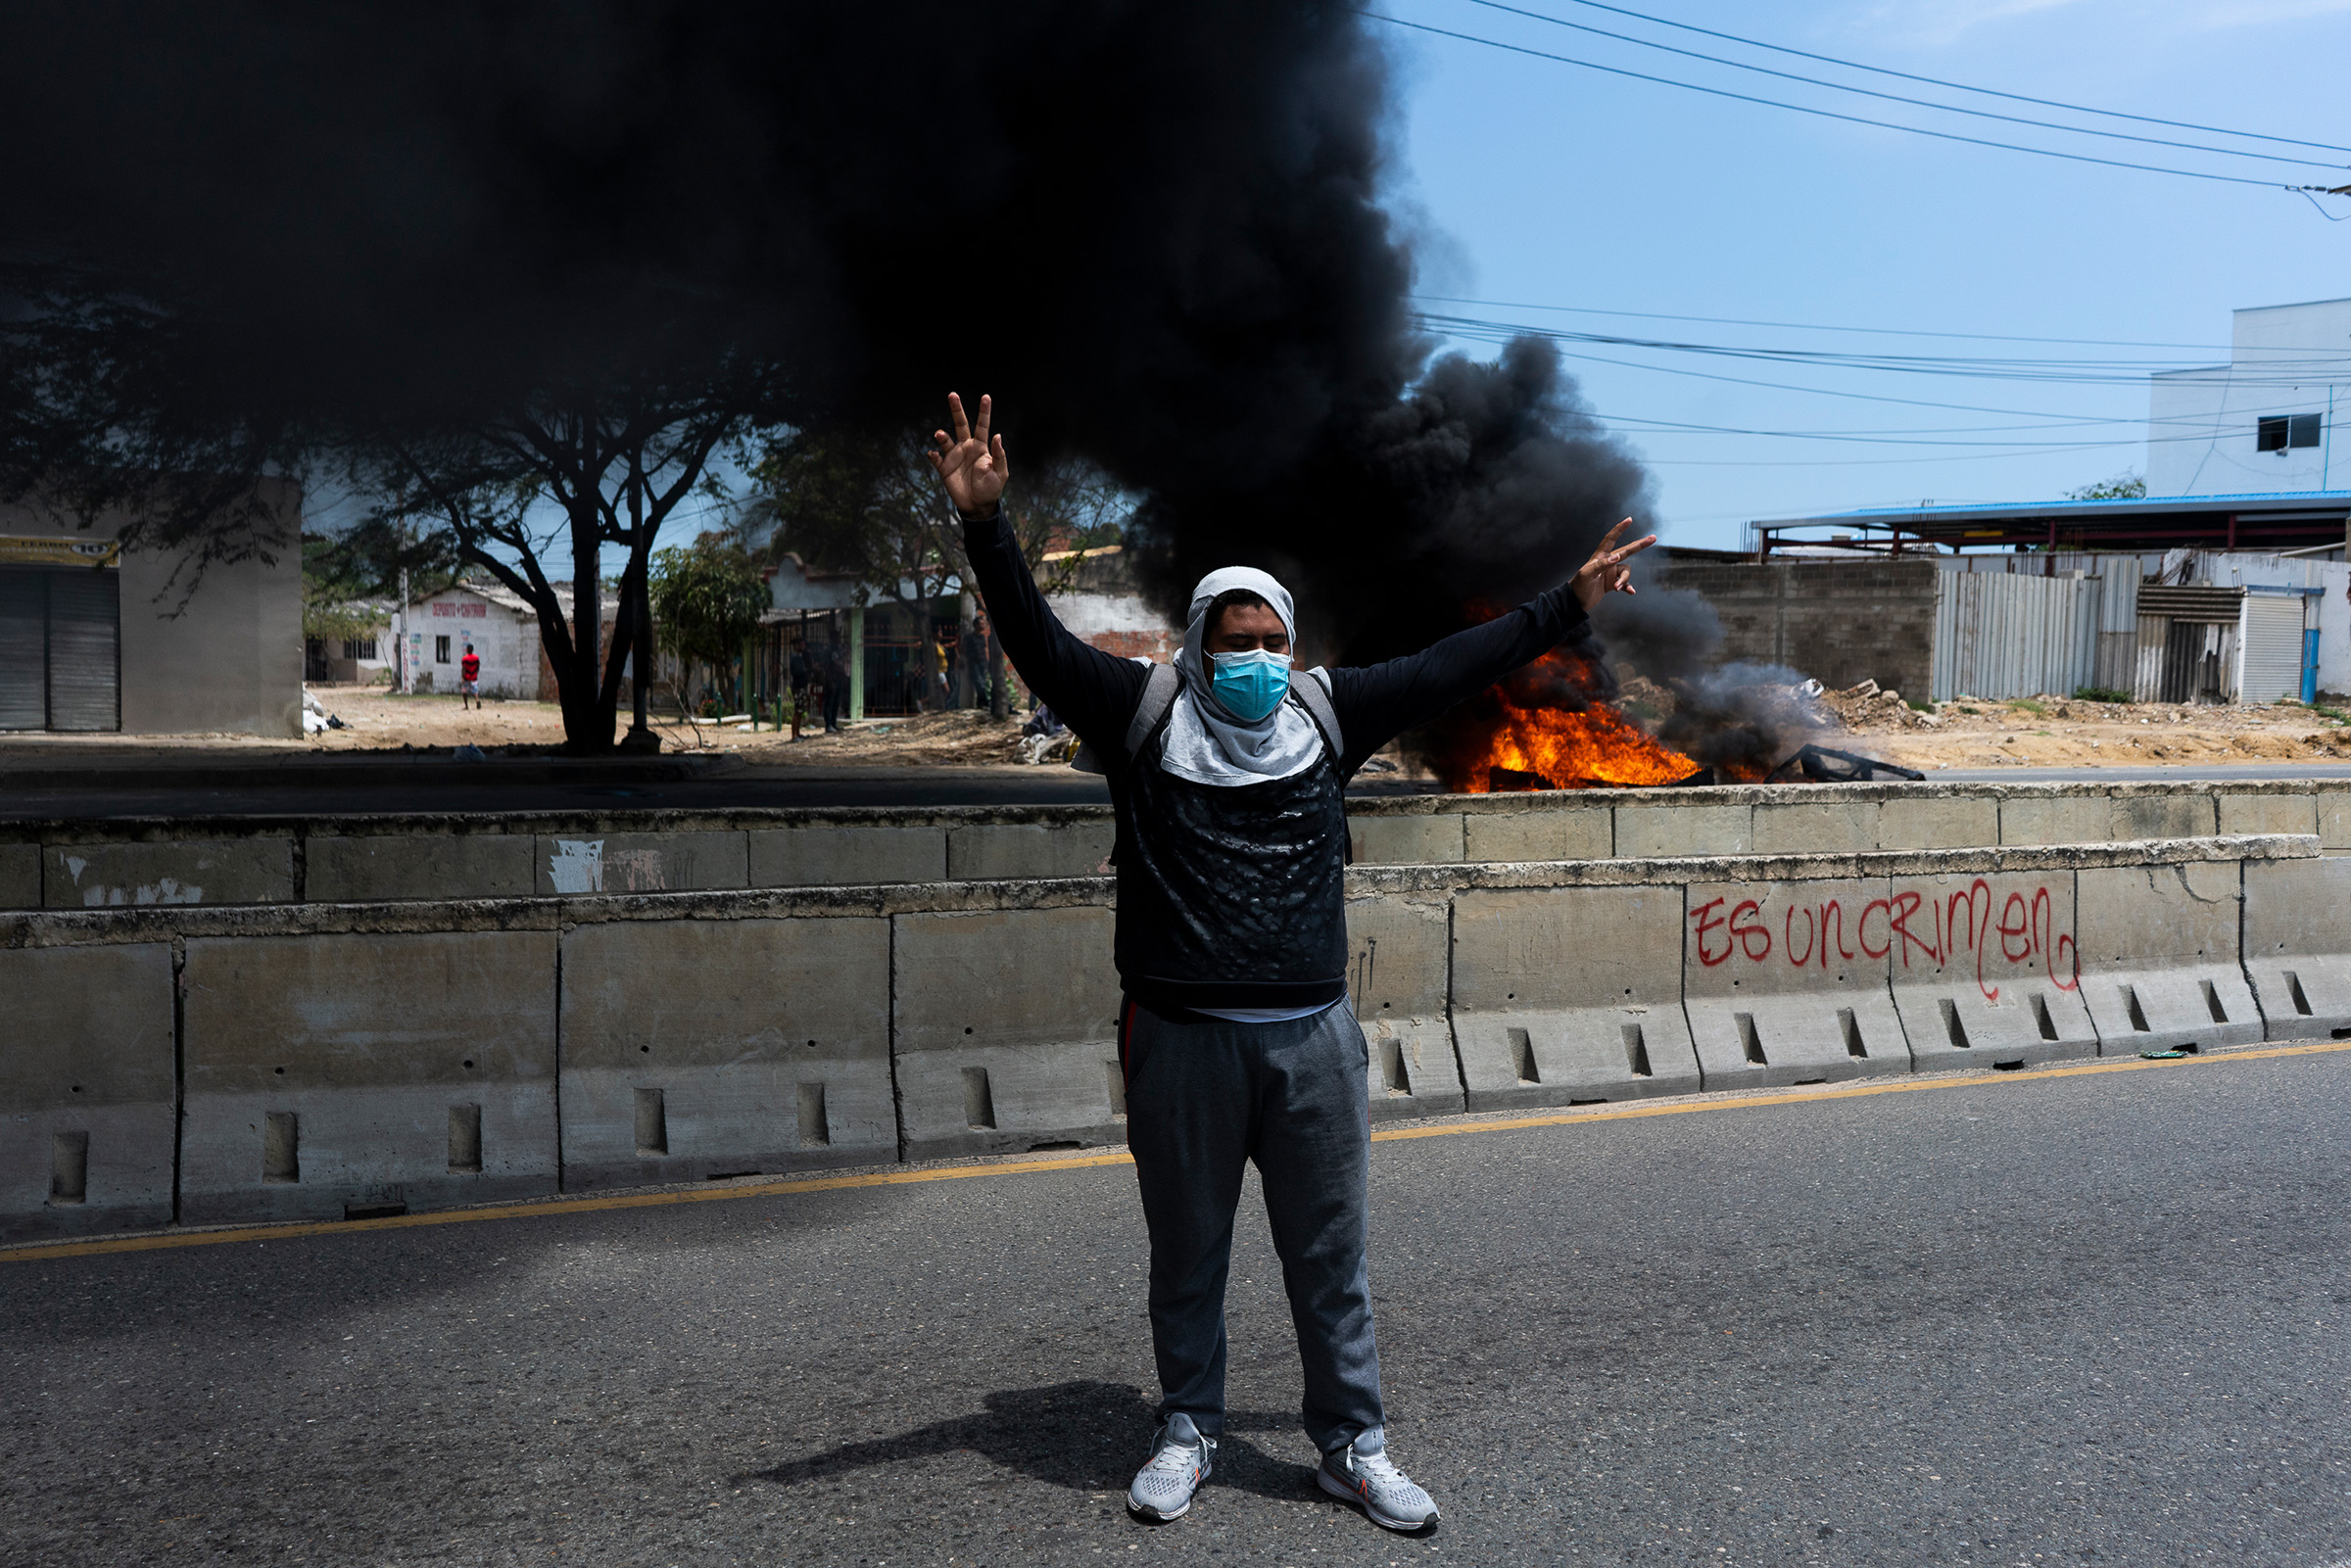 A protester raises his hands in the middle of clashes with the police in Barranquilla on May 1.